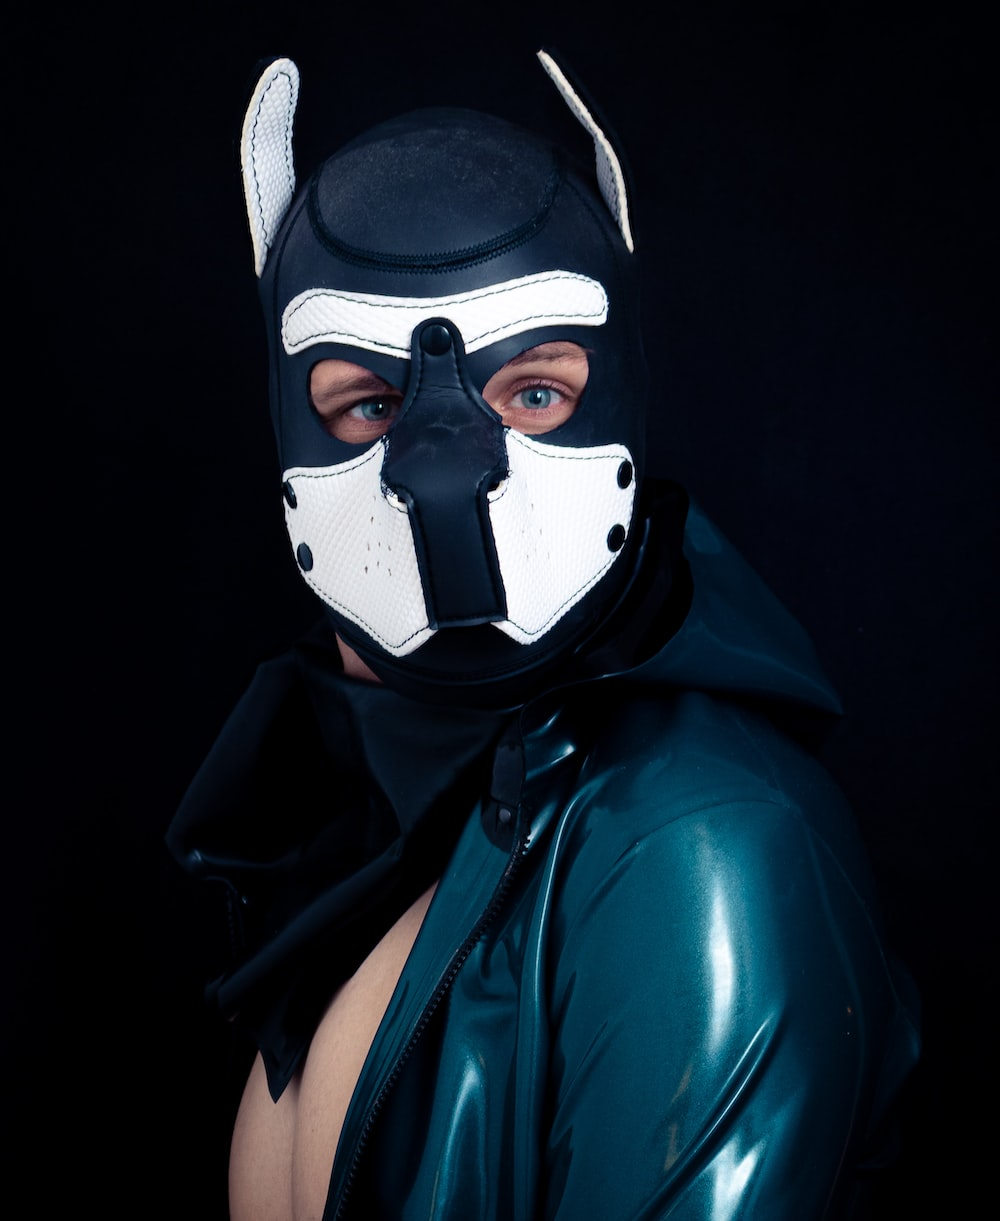 person wearing black and white full-face mask